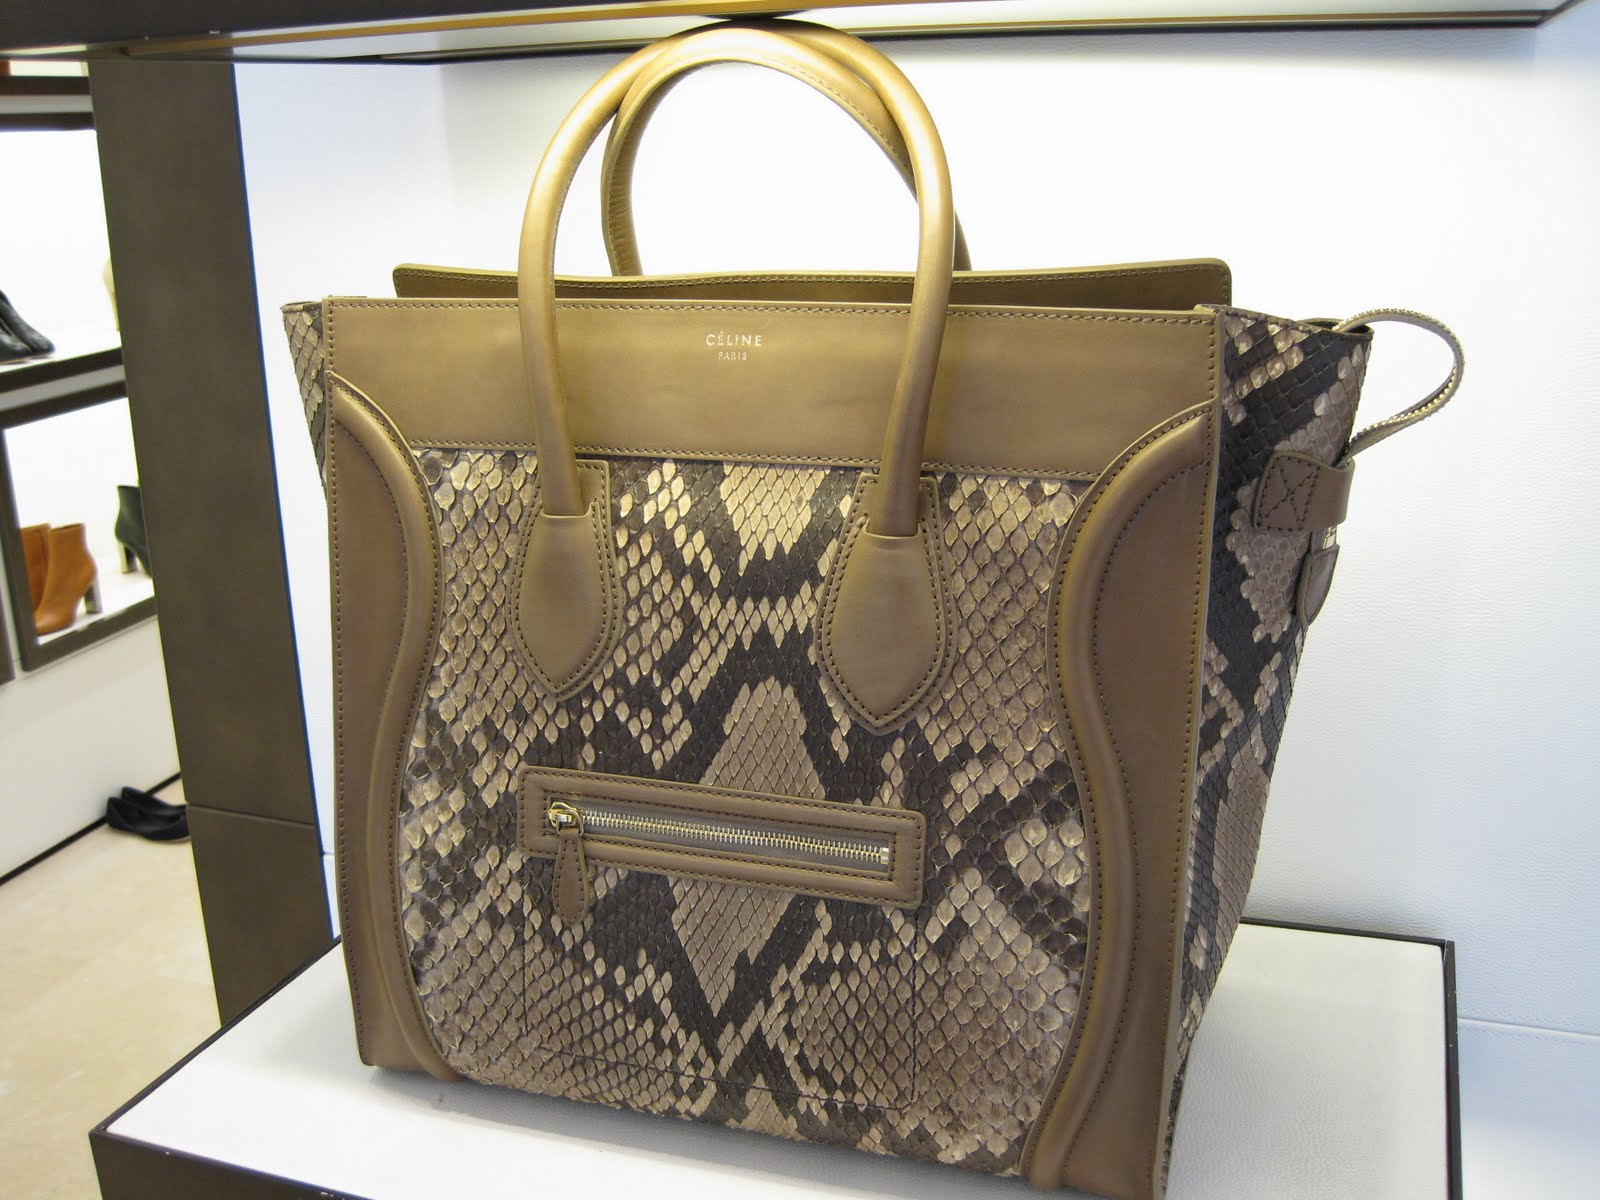 How Much Are Celine Bags